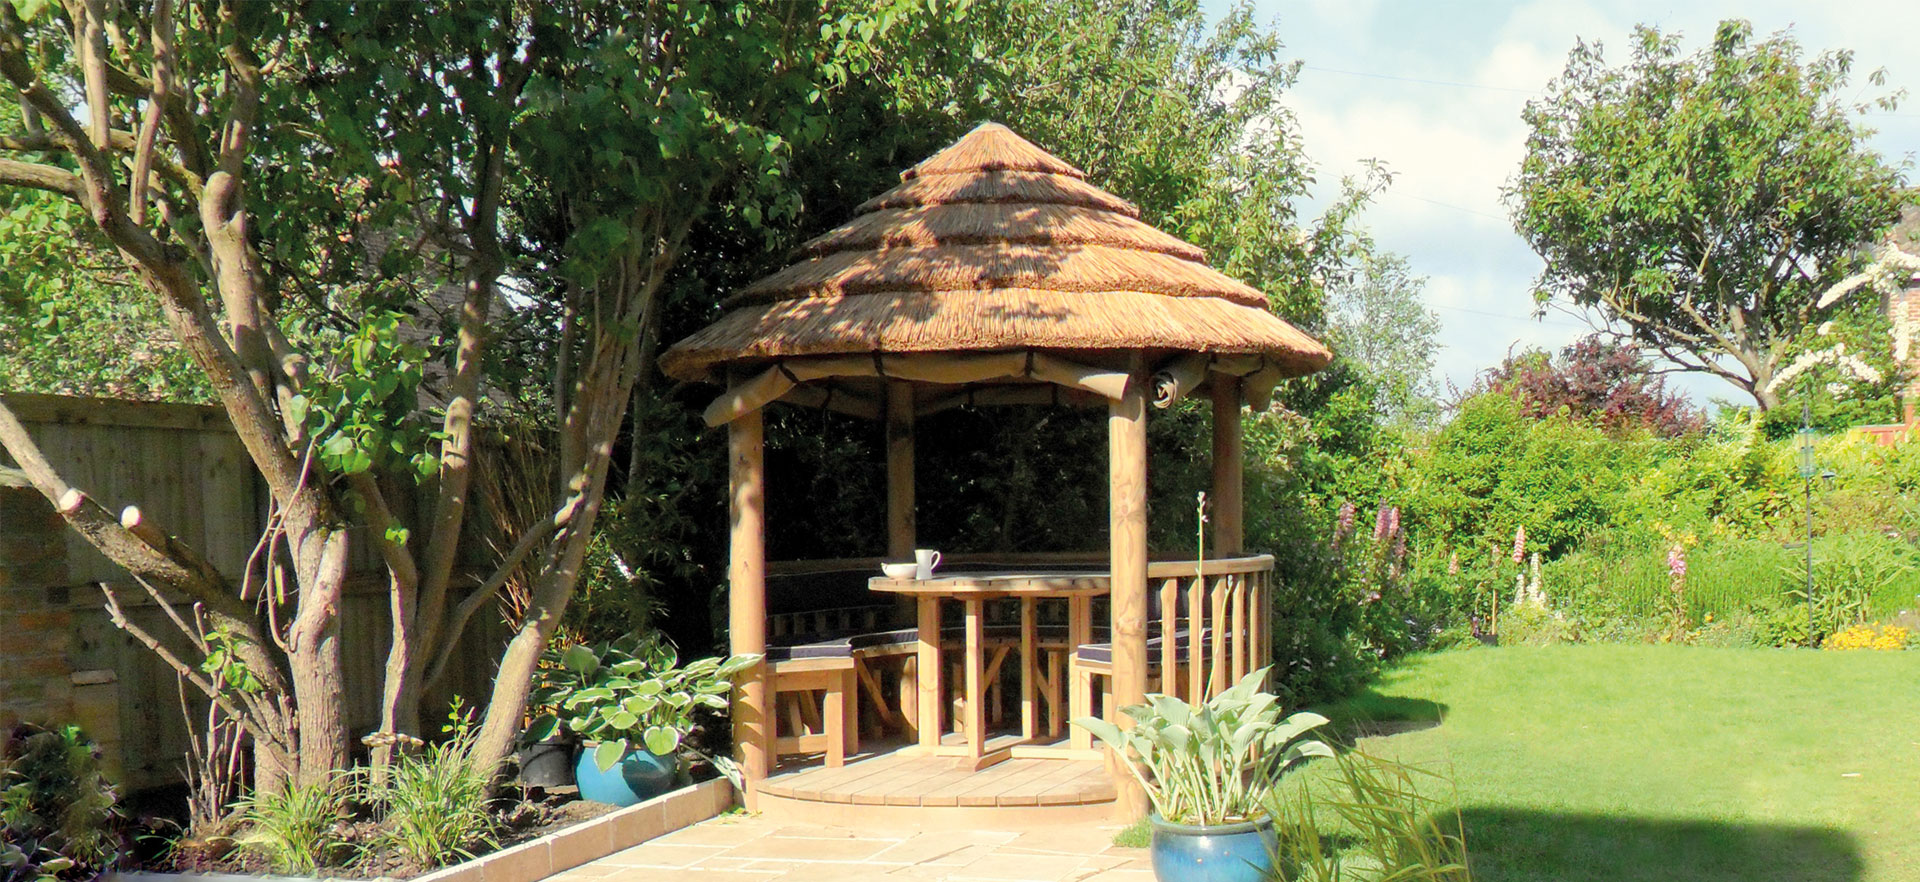 2.5 metre gazebo in the shade of trees in garden